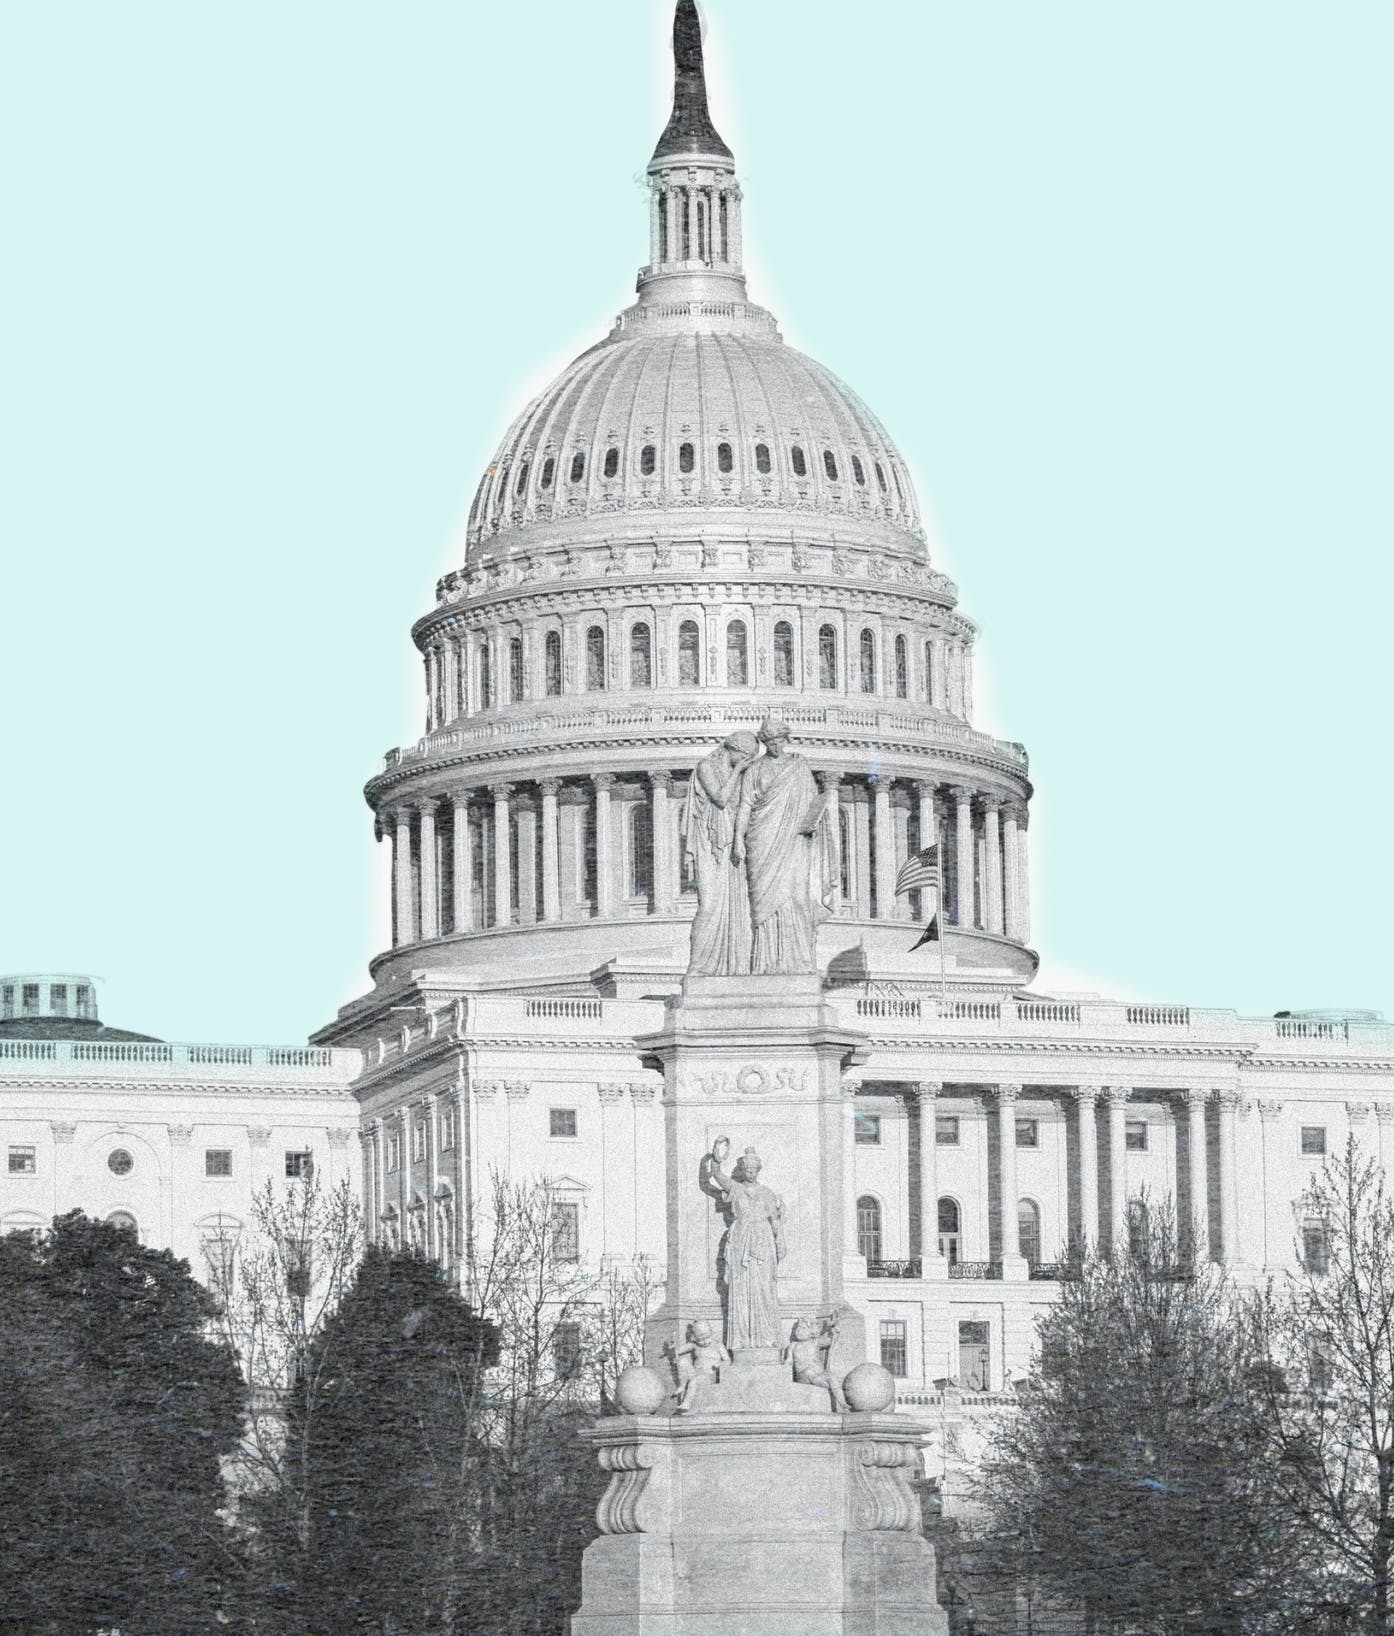 Capitol building Washington DC photomontage with black and white building against blue sky